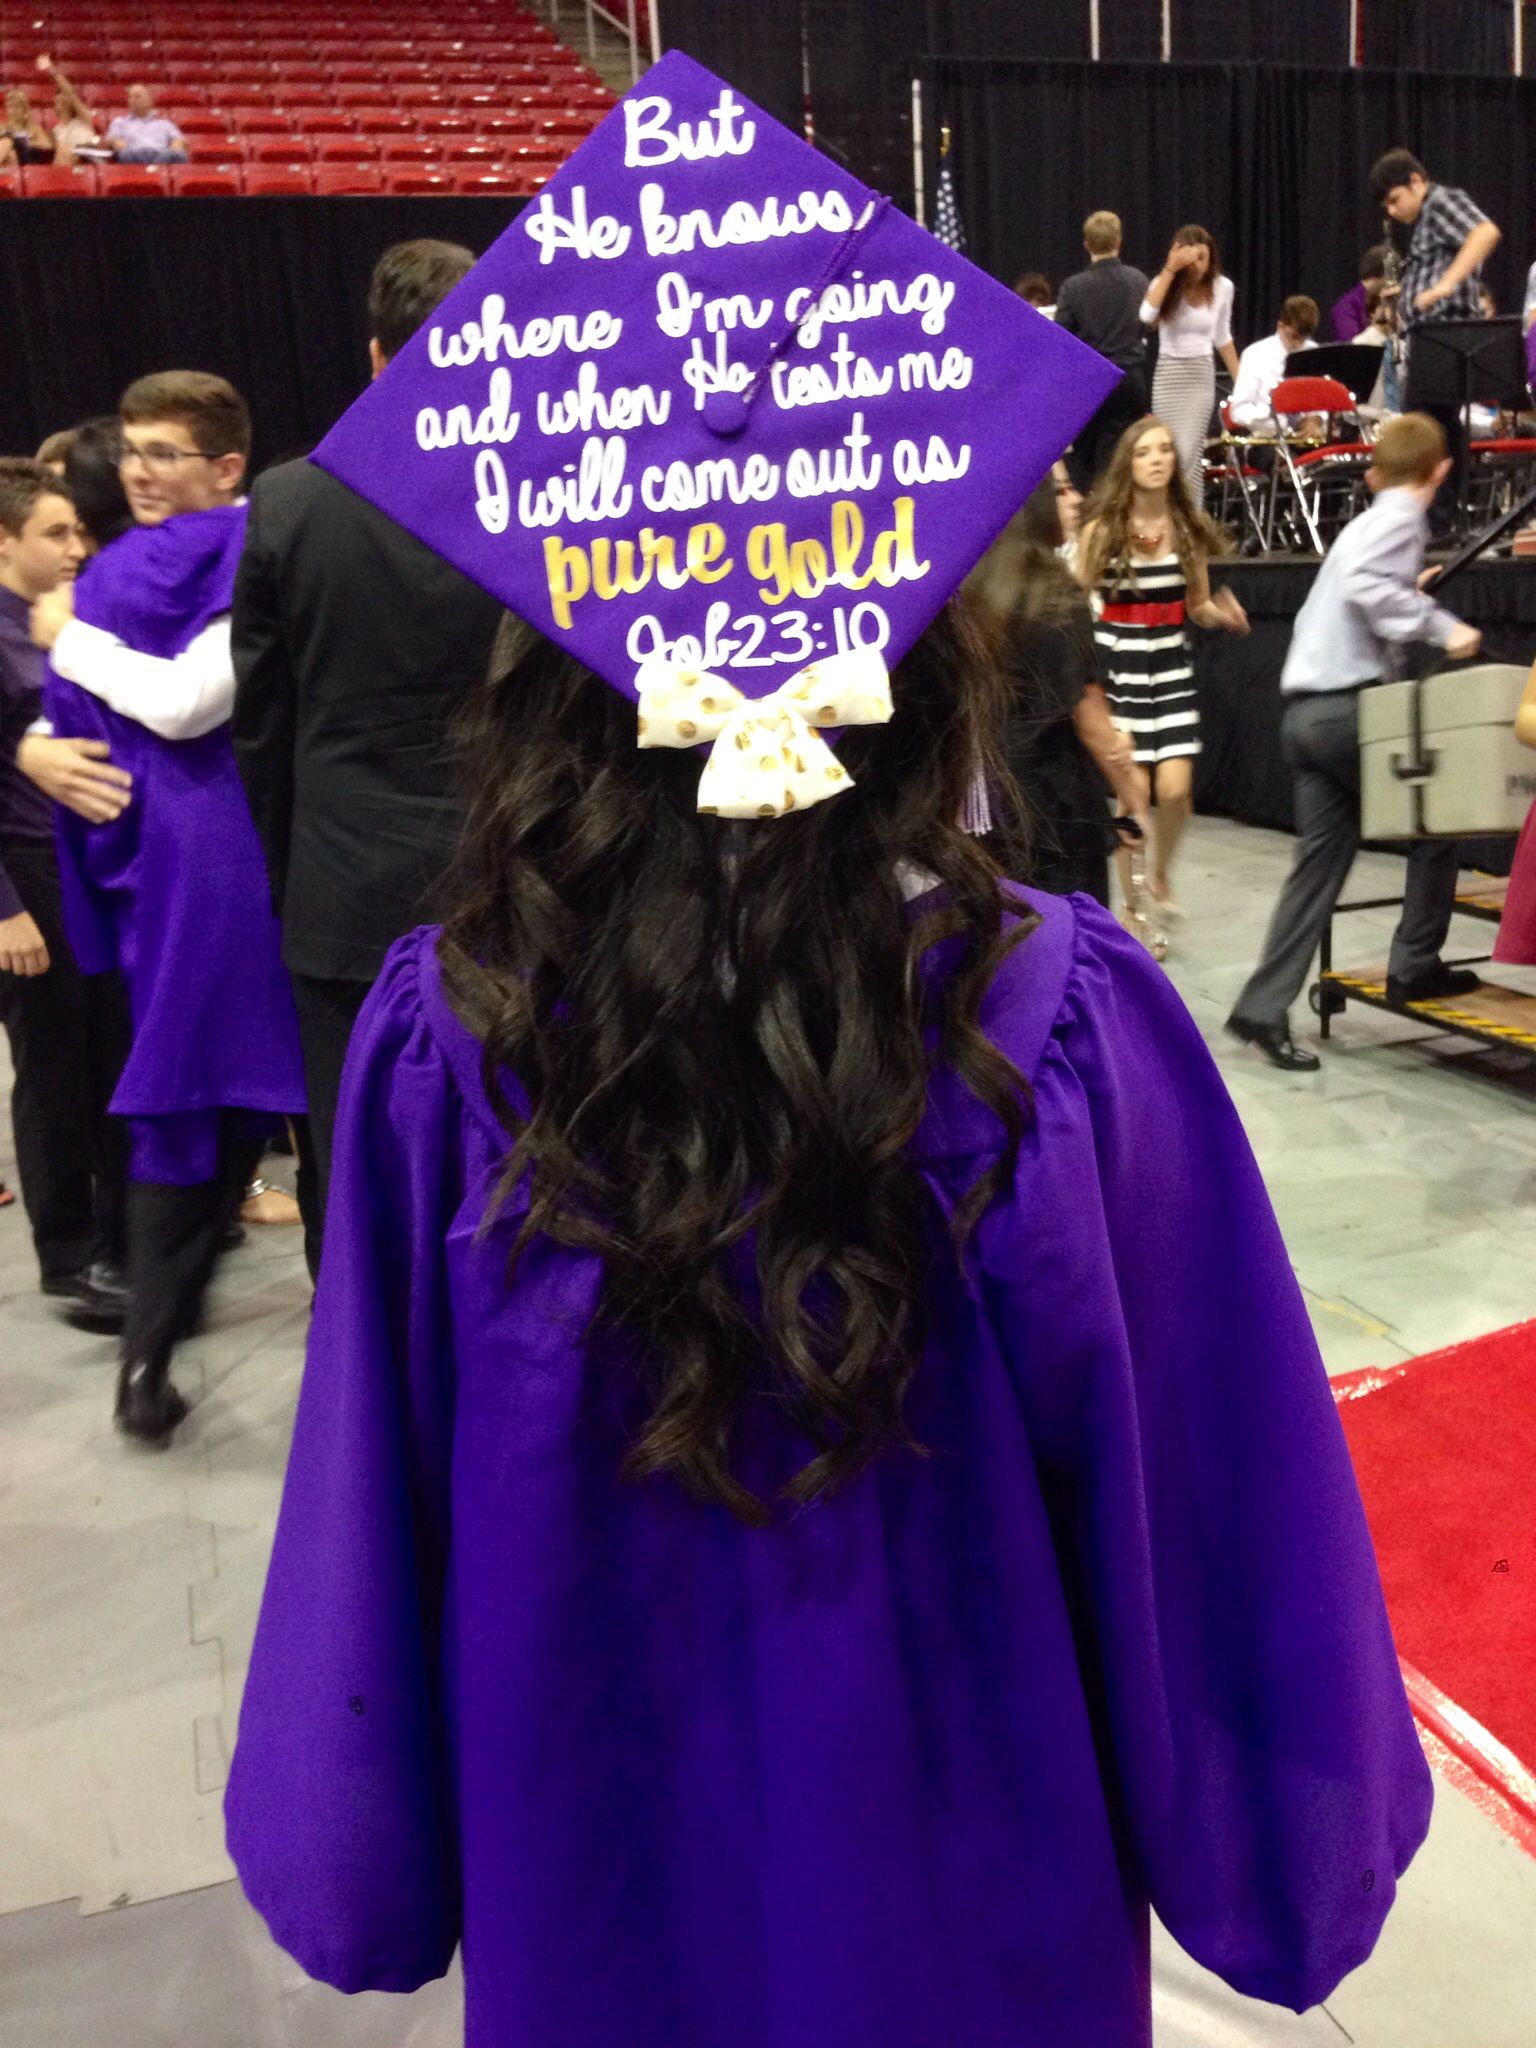 Job 23 10 Port Neches Groves High School Class of 2014 Cap by